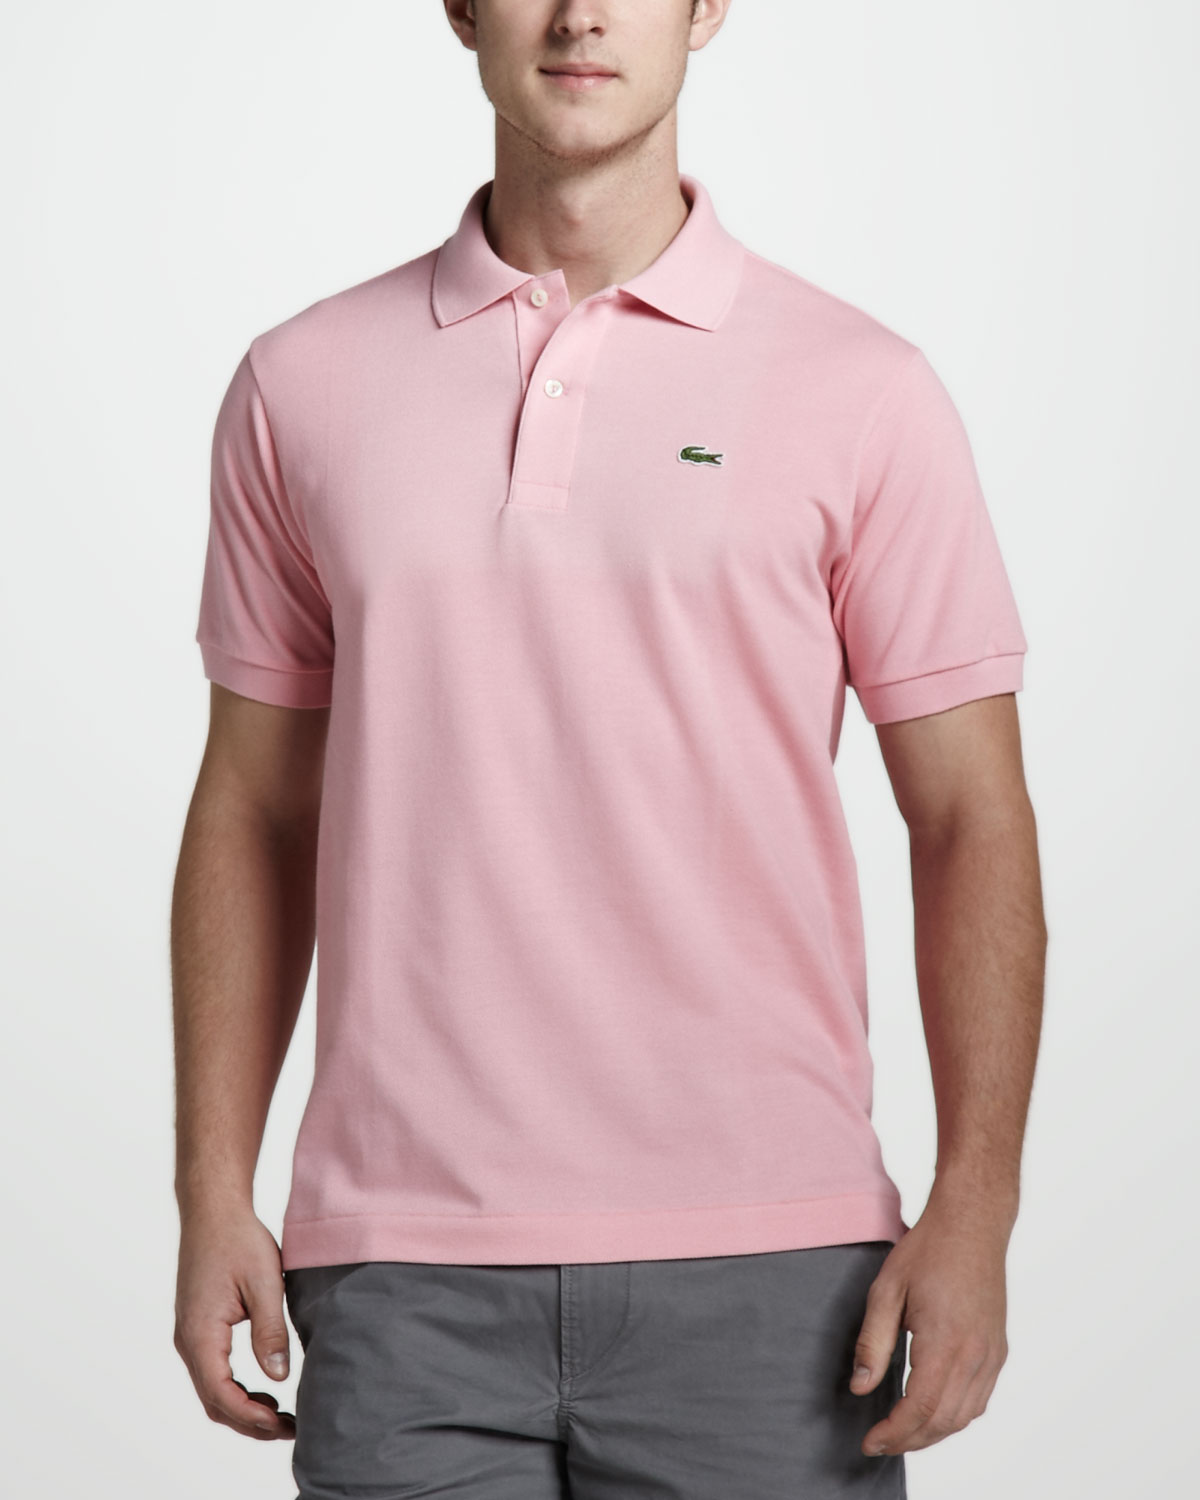 c5d24b80fdf93 Lyst - Lacoste Classic Pique Polo in Pink for Men